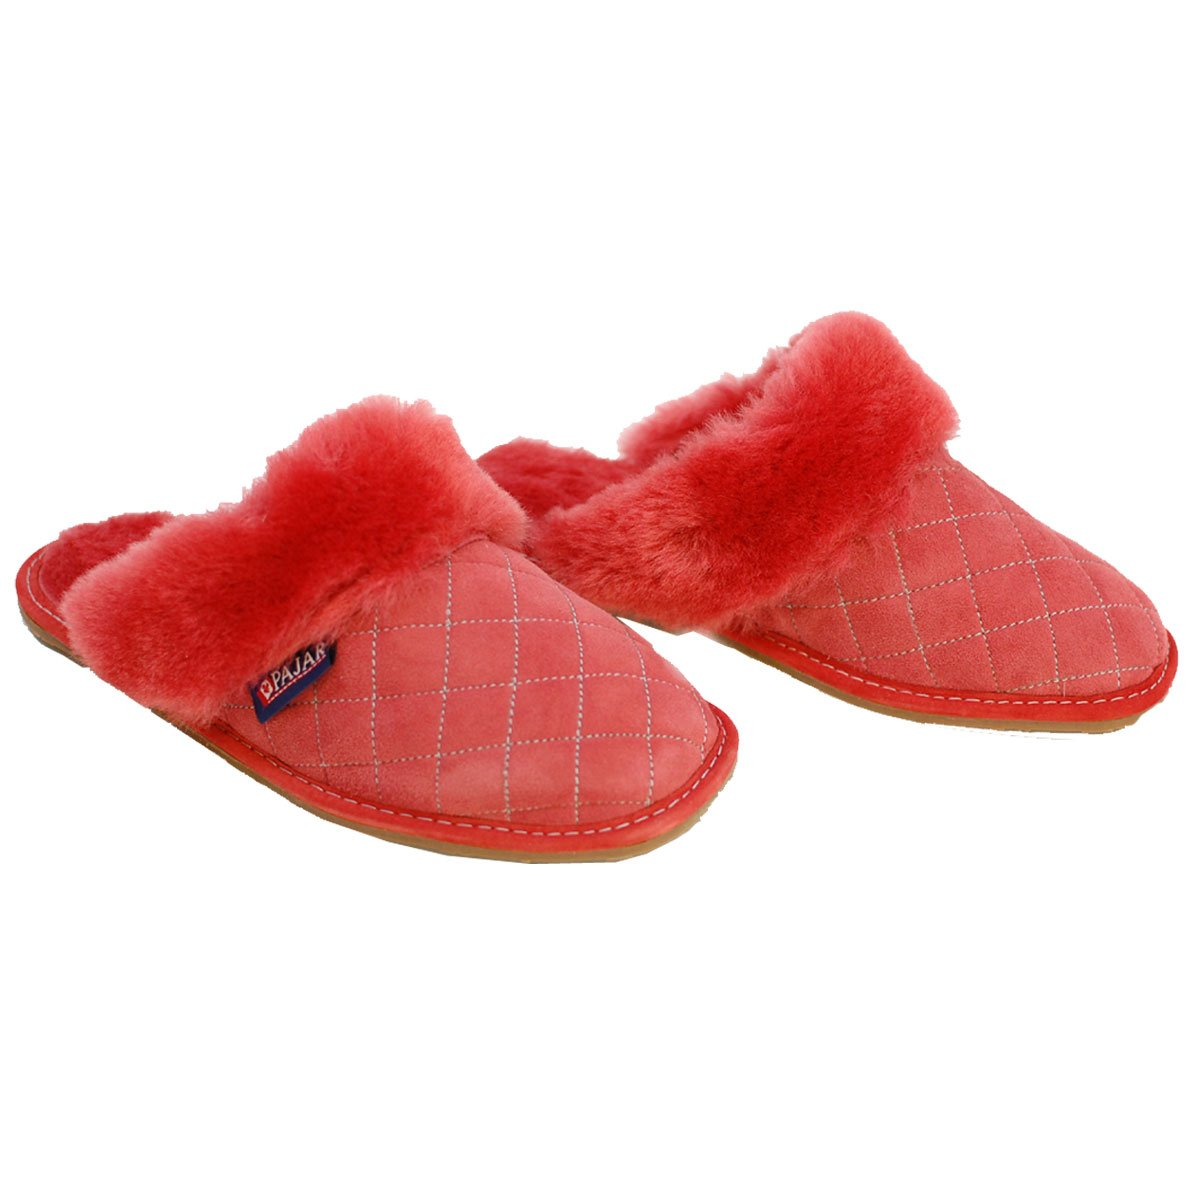 Pajar Women's MAE Slipper, Red, 10 M US